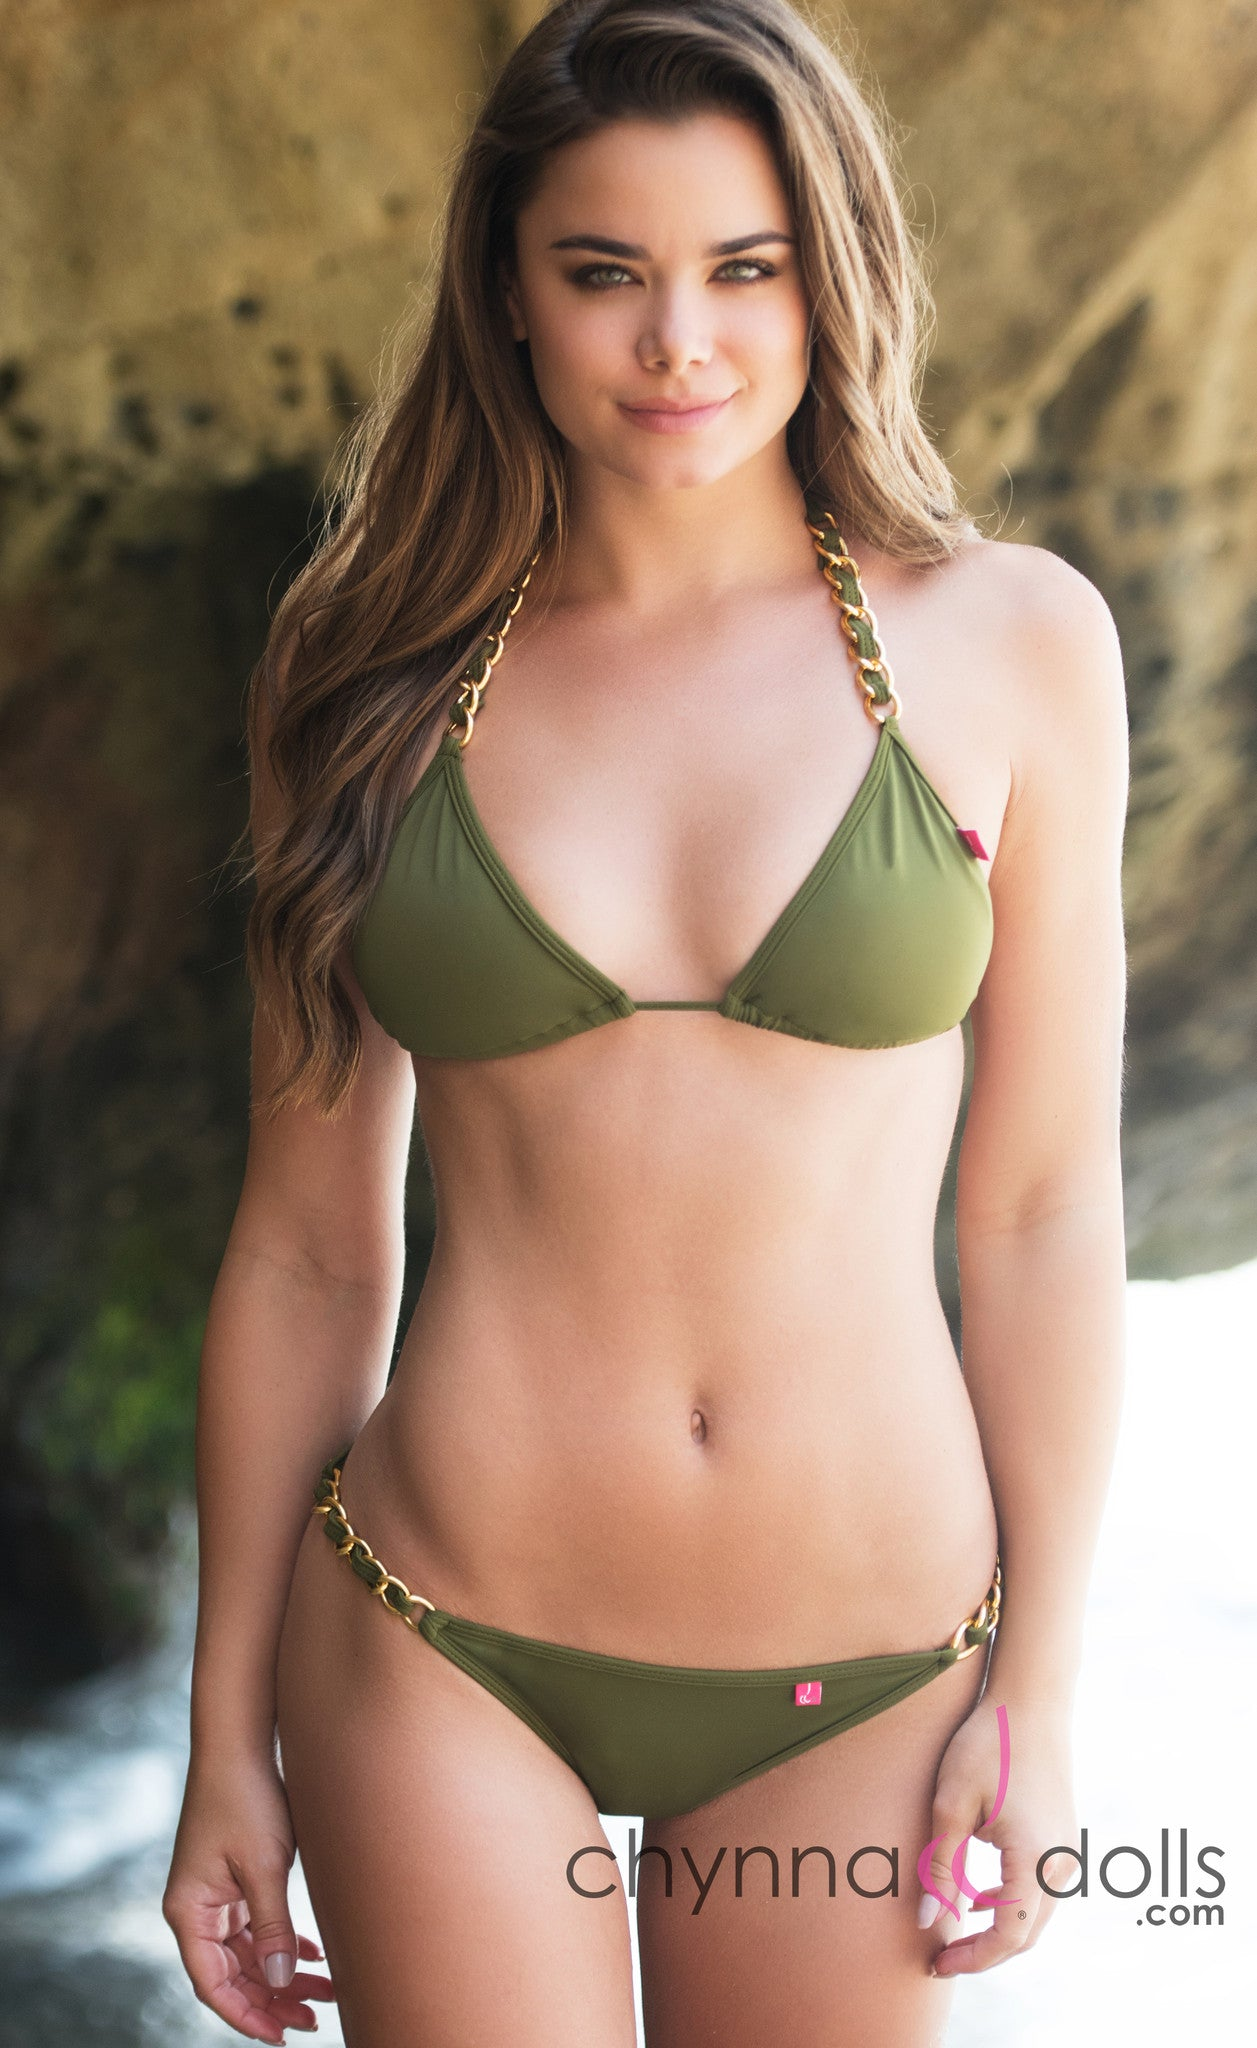 Milan: String Bikini in Olive Green w/ Gold Chain - Chynna Dolls